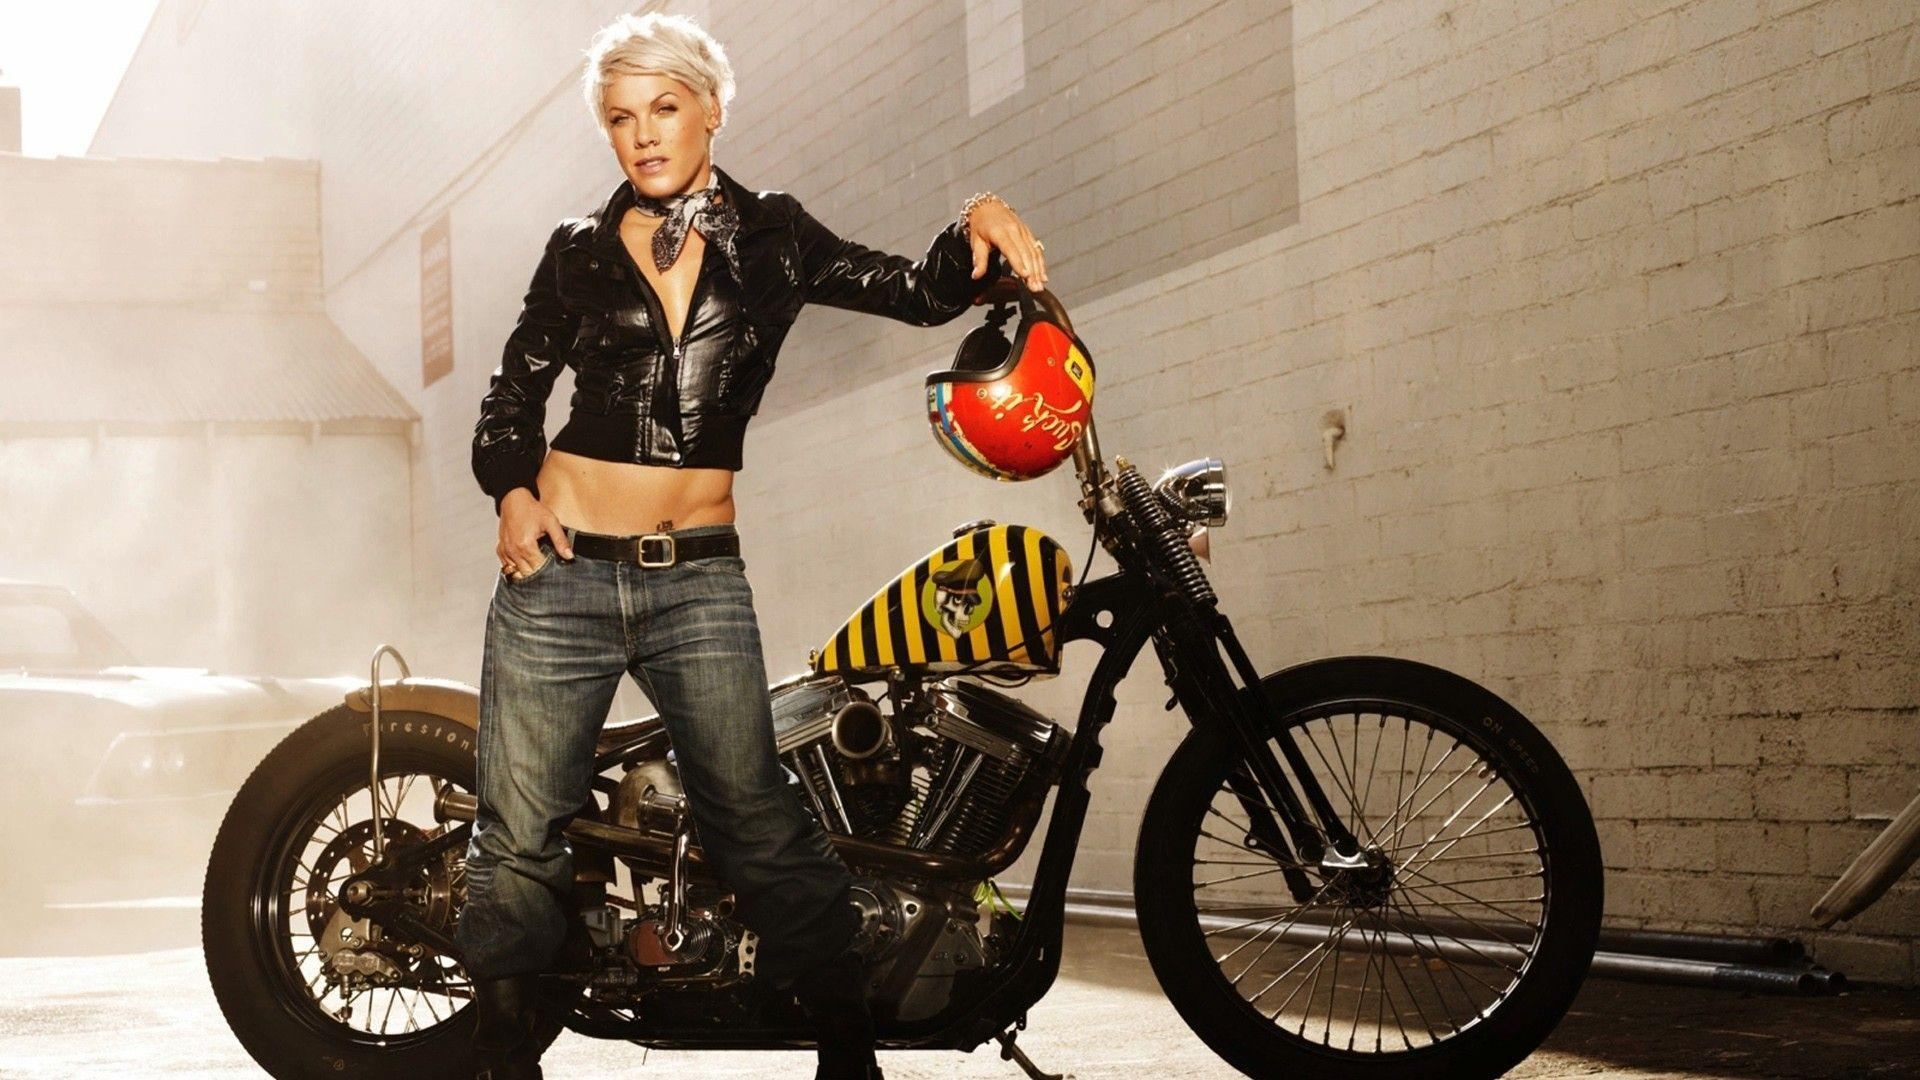 Pink The Singer Wallpapers Wallpaper Cave HD Wallpapers Download Free Images Wallpaper [1000image.com]